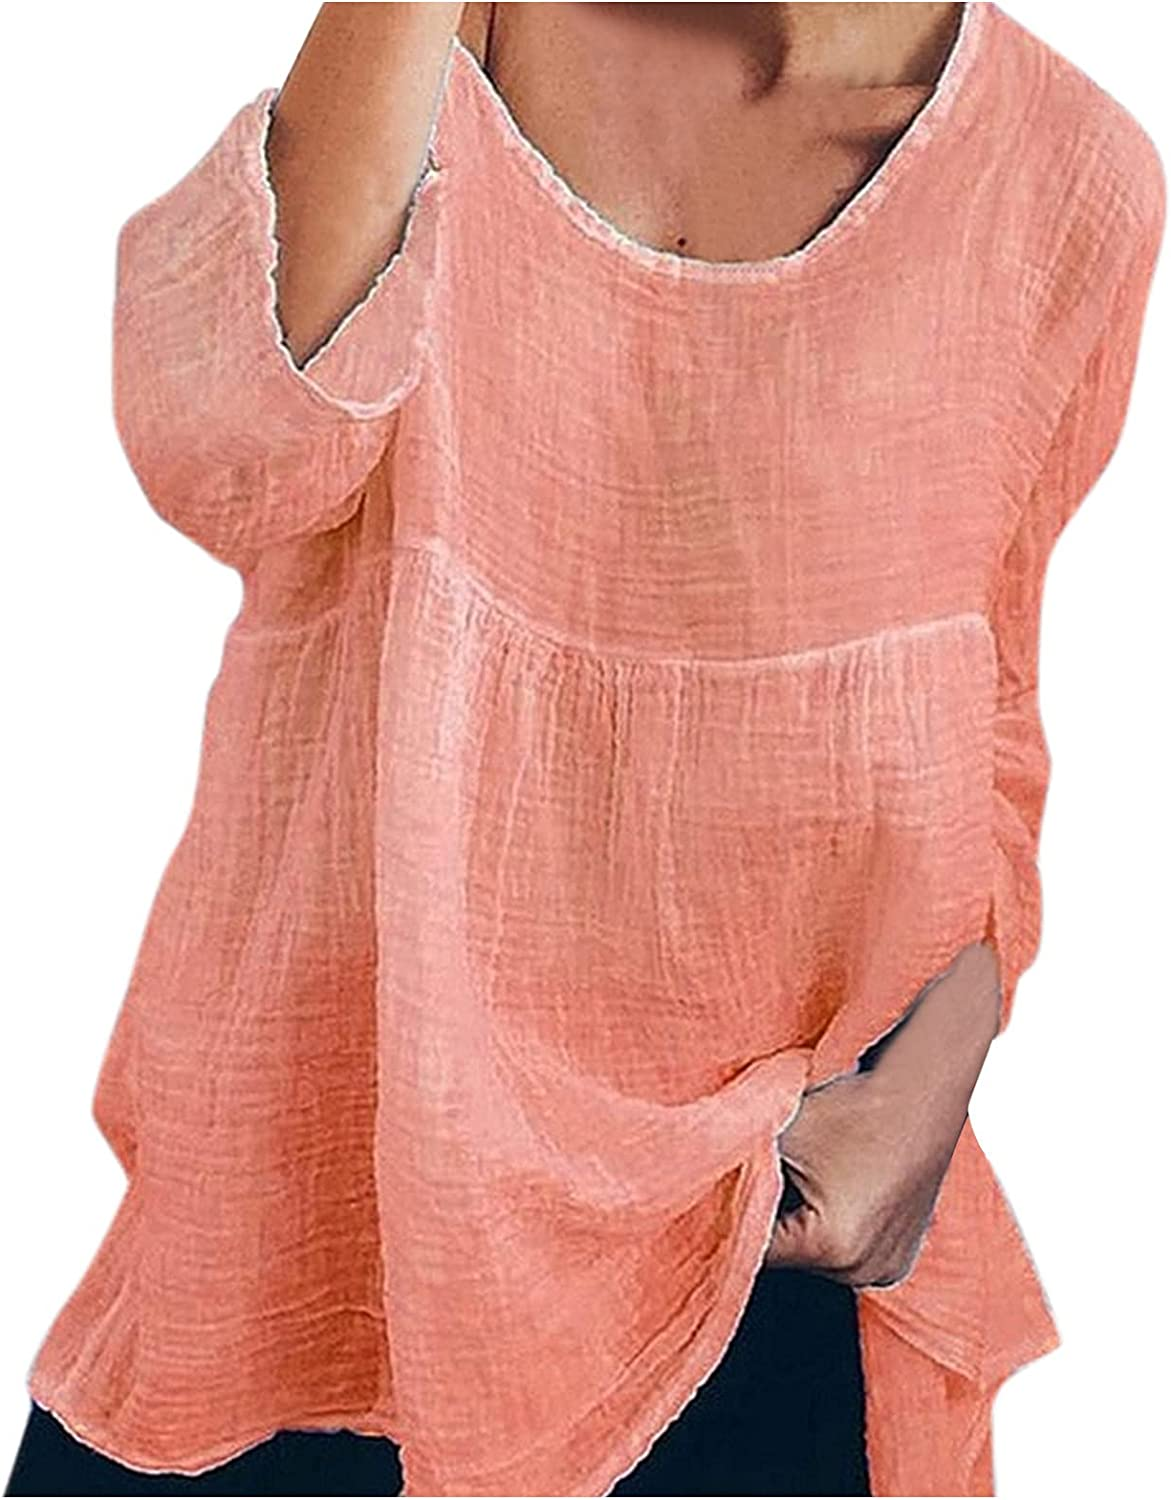 Linen Shirt for Women Scoop Neck To Loose Half Award Very popular Fit Casual Sleeve